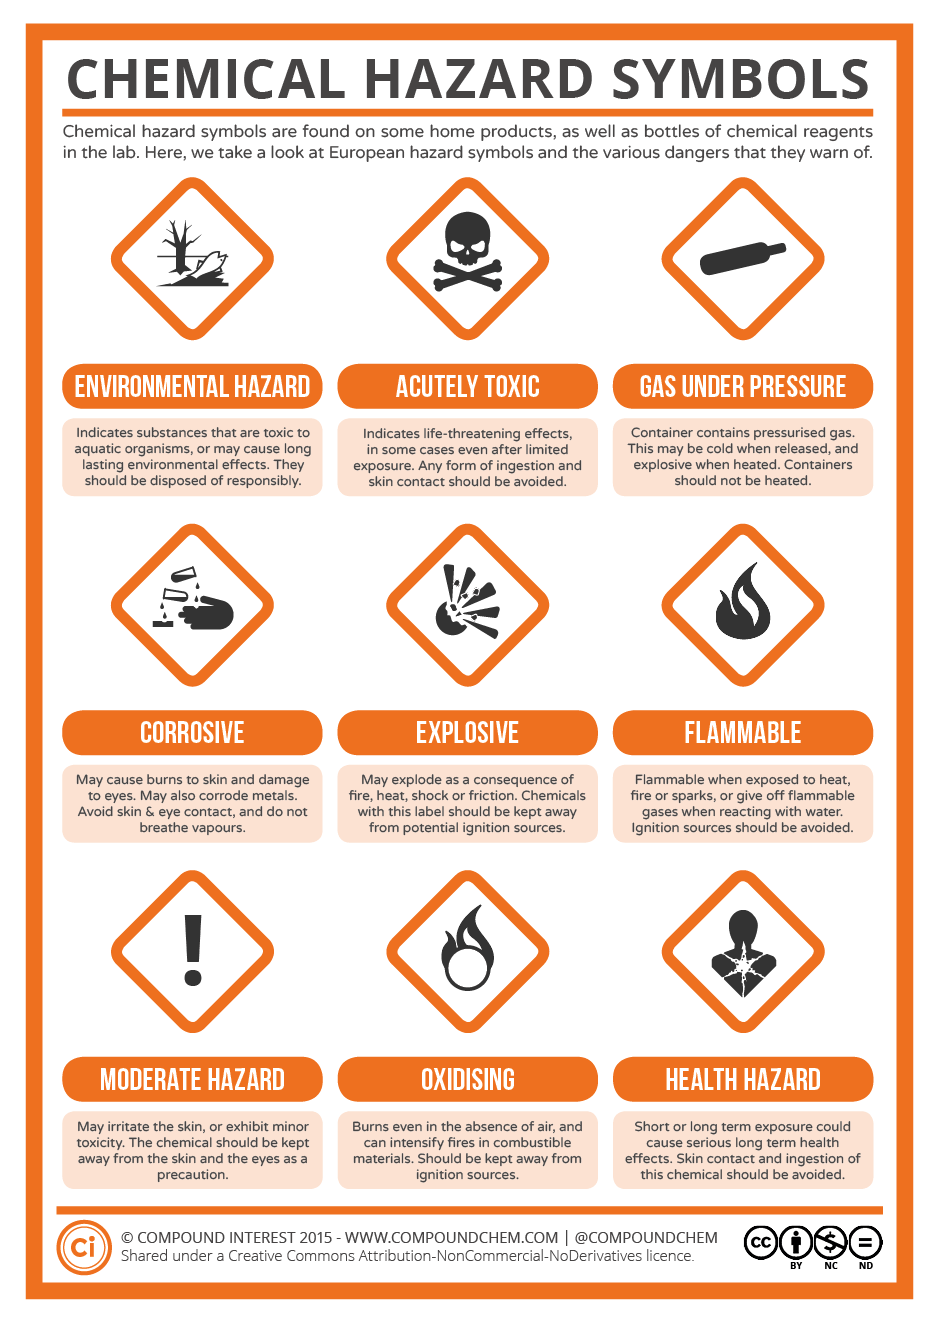 Compound interest a guide to chemical hazard symbols a guide to chemical hazard symbols biocorpaavc